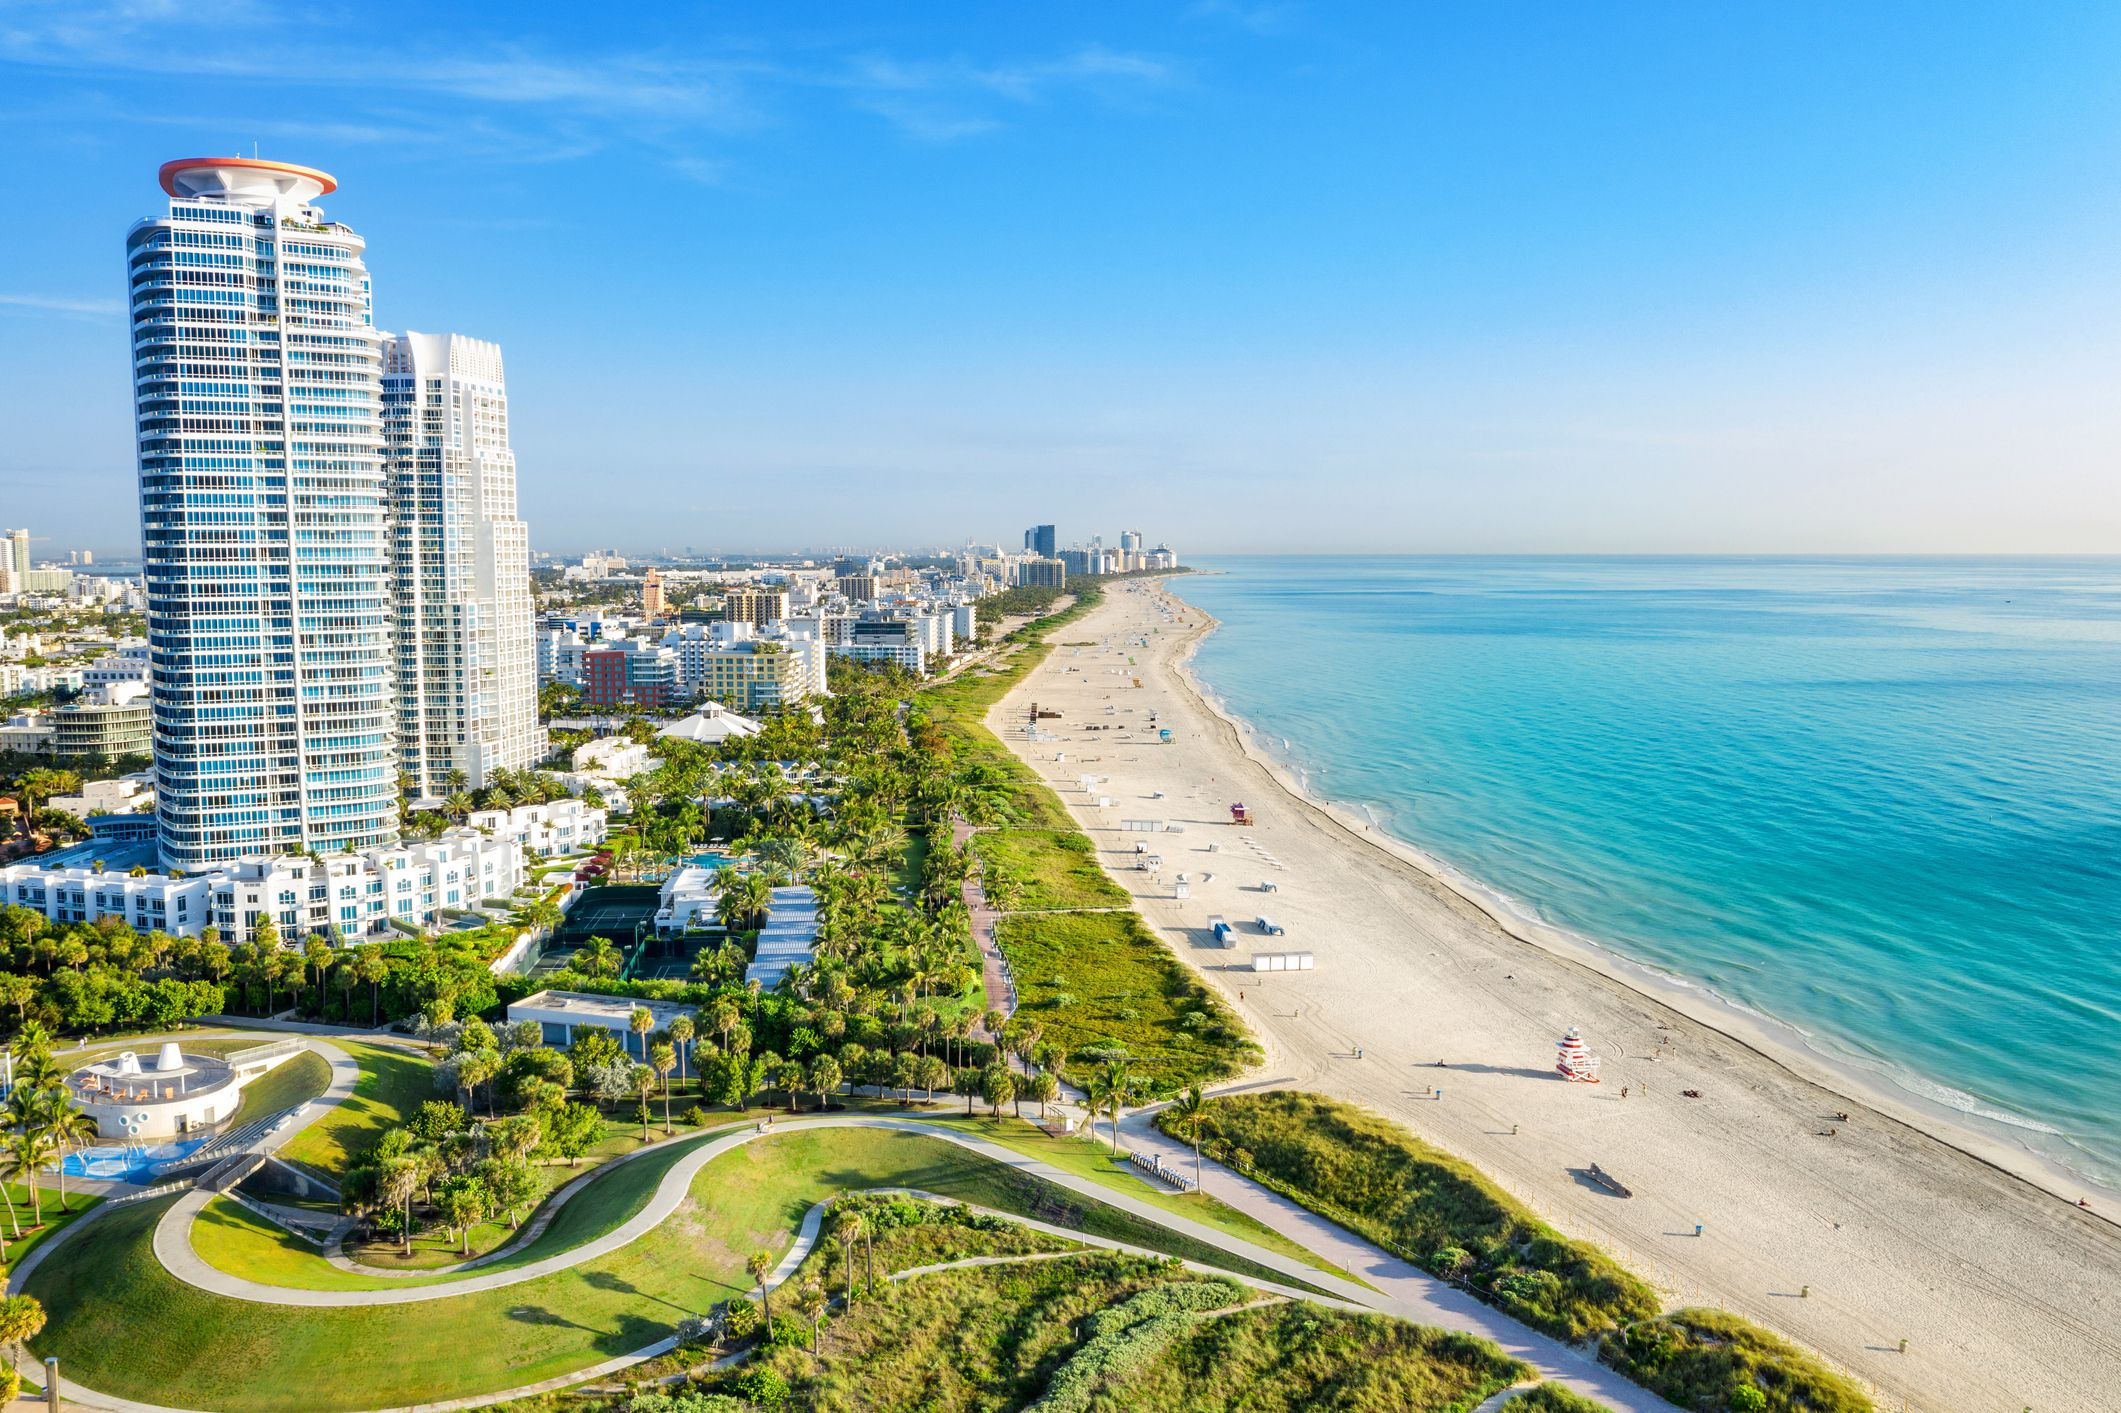 10 Best Things to Do in South Beach